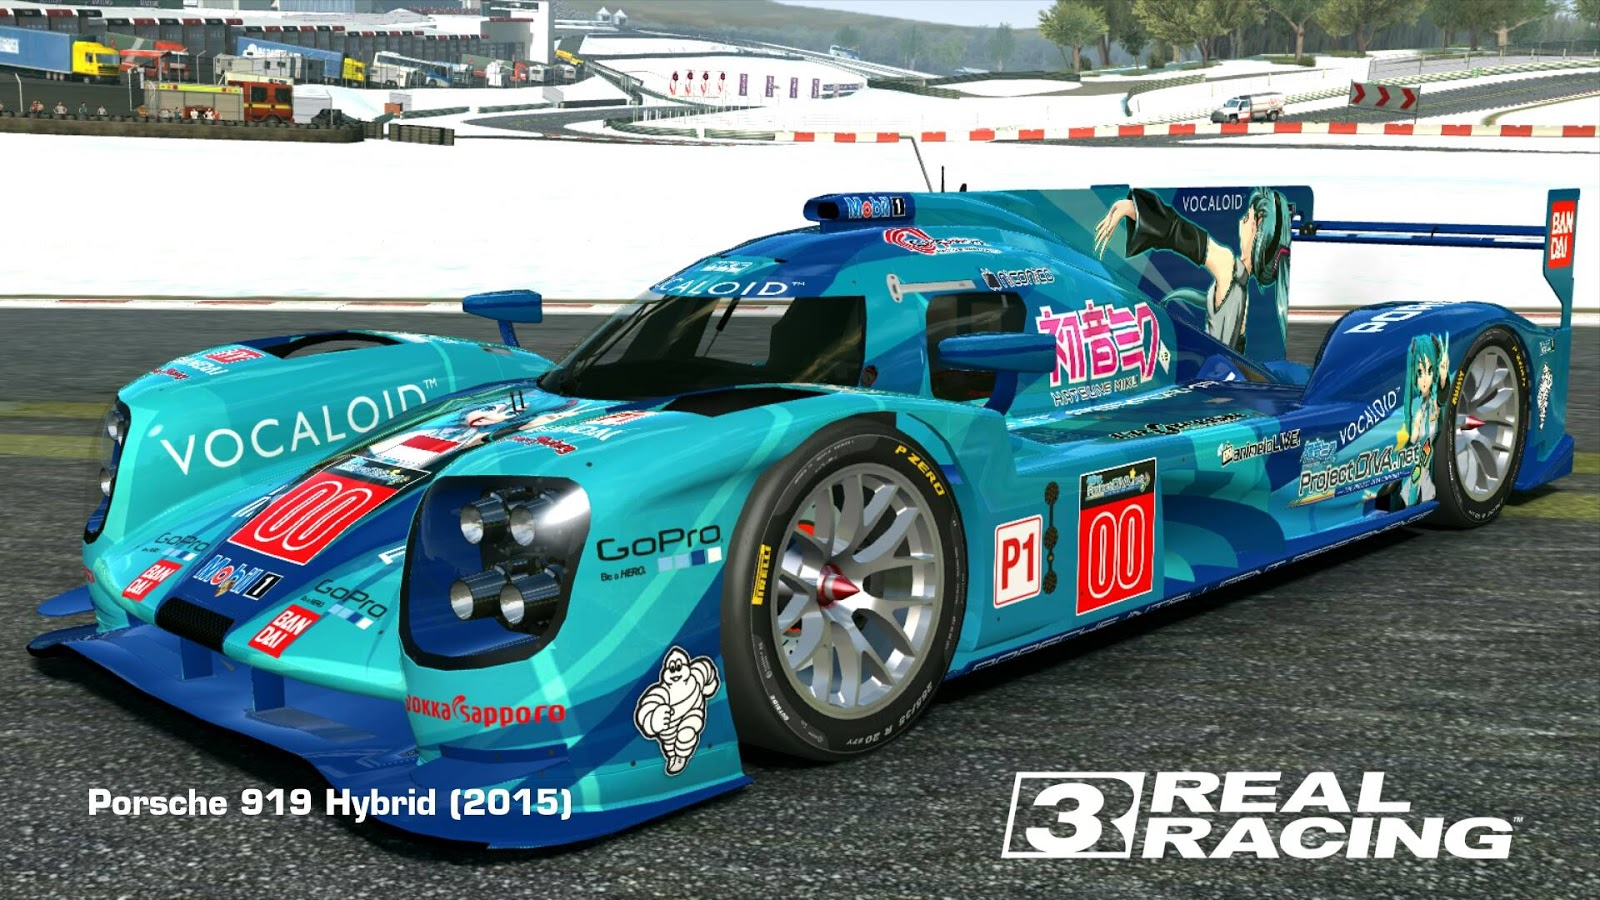 2015 porsche 919 hybrid project diva hatsune miku 00 vocaloid series by tanto arc